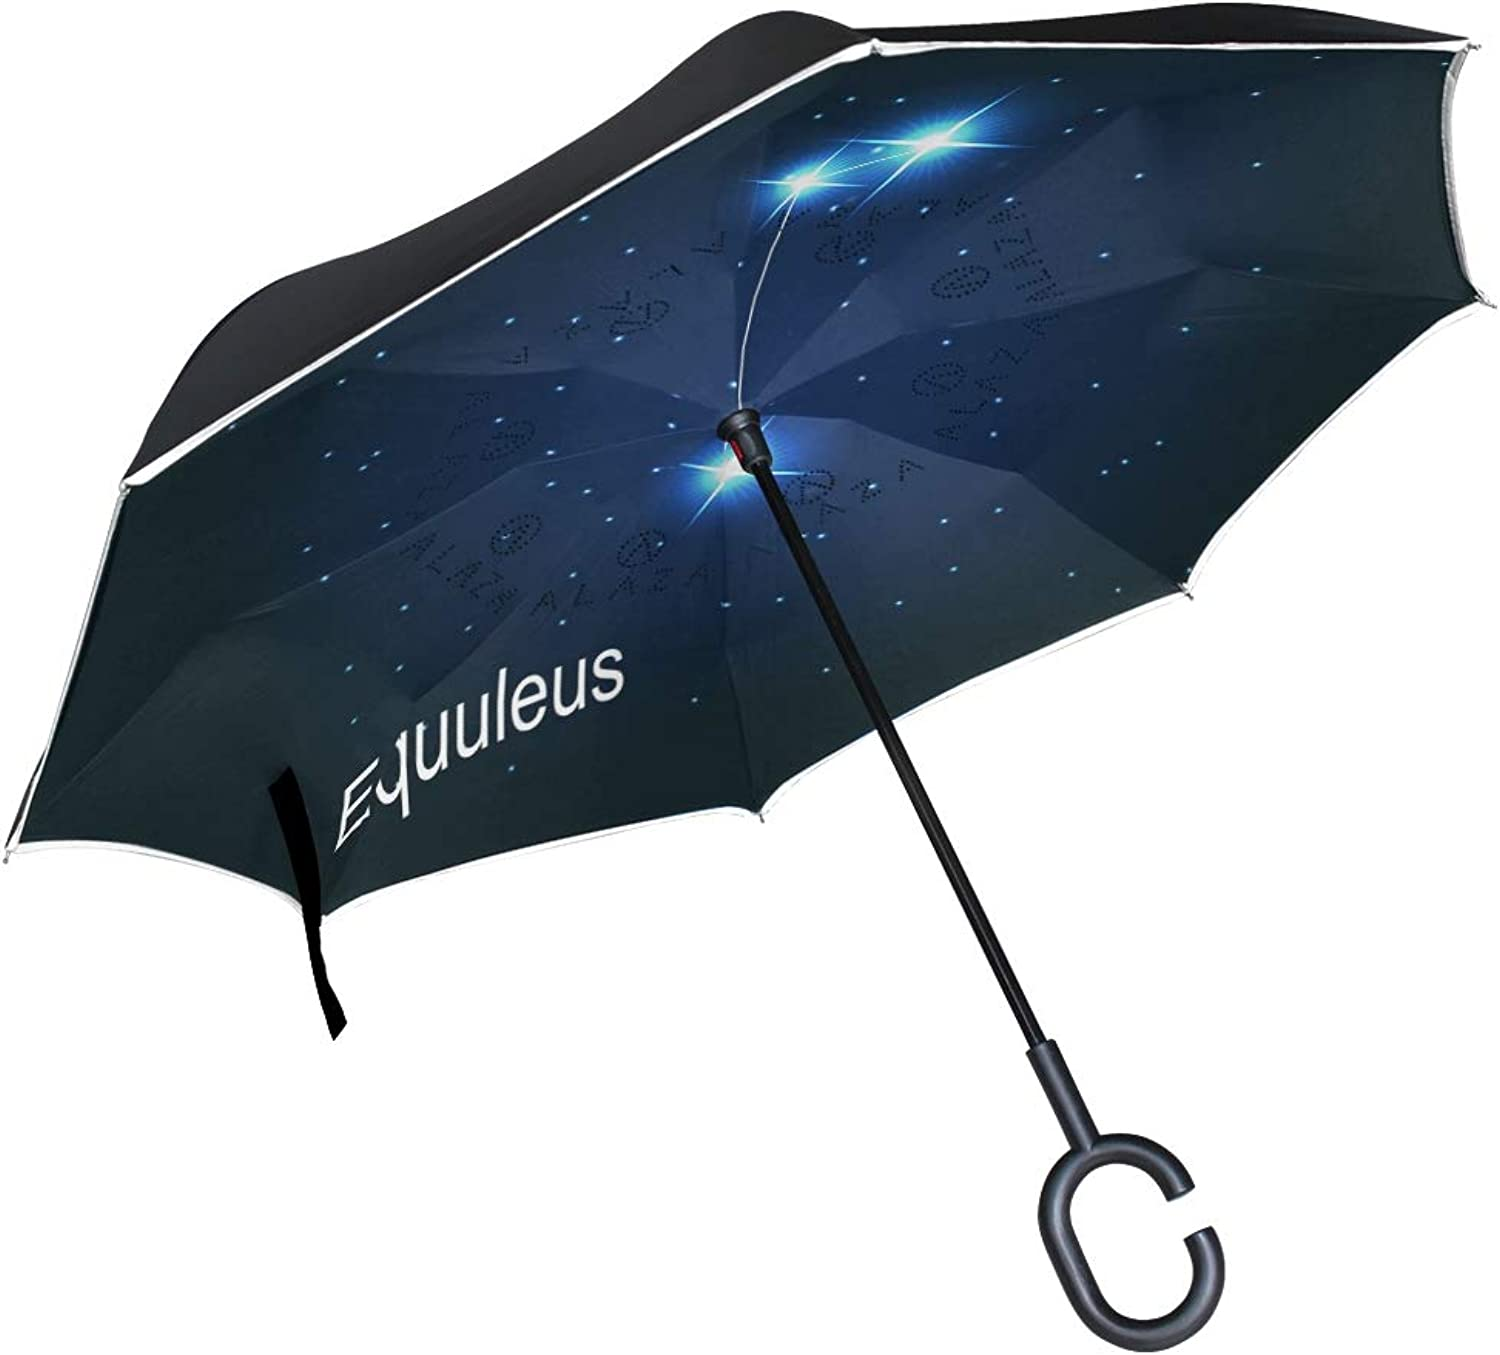 Ingreened Umbrella Double Layer Reverse Umbrella Waterproof Windproof UV Predection Straight Umbrella with CShaped Handle Equuleus Digital Printing for Car Rain Outdoor Use